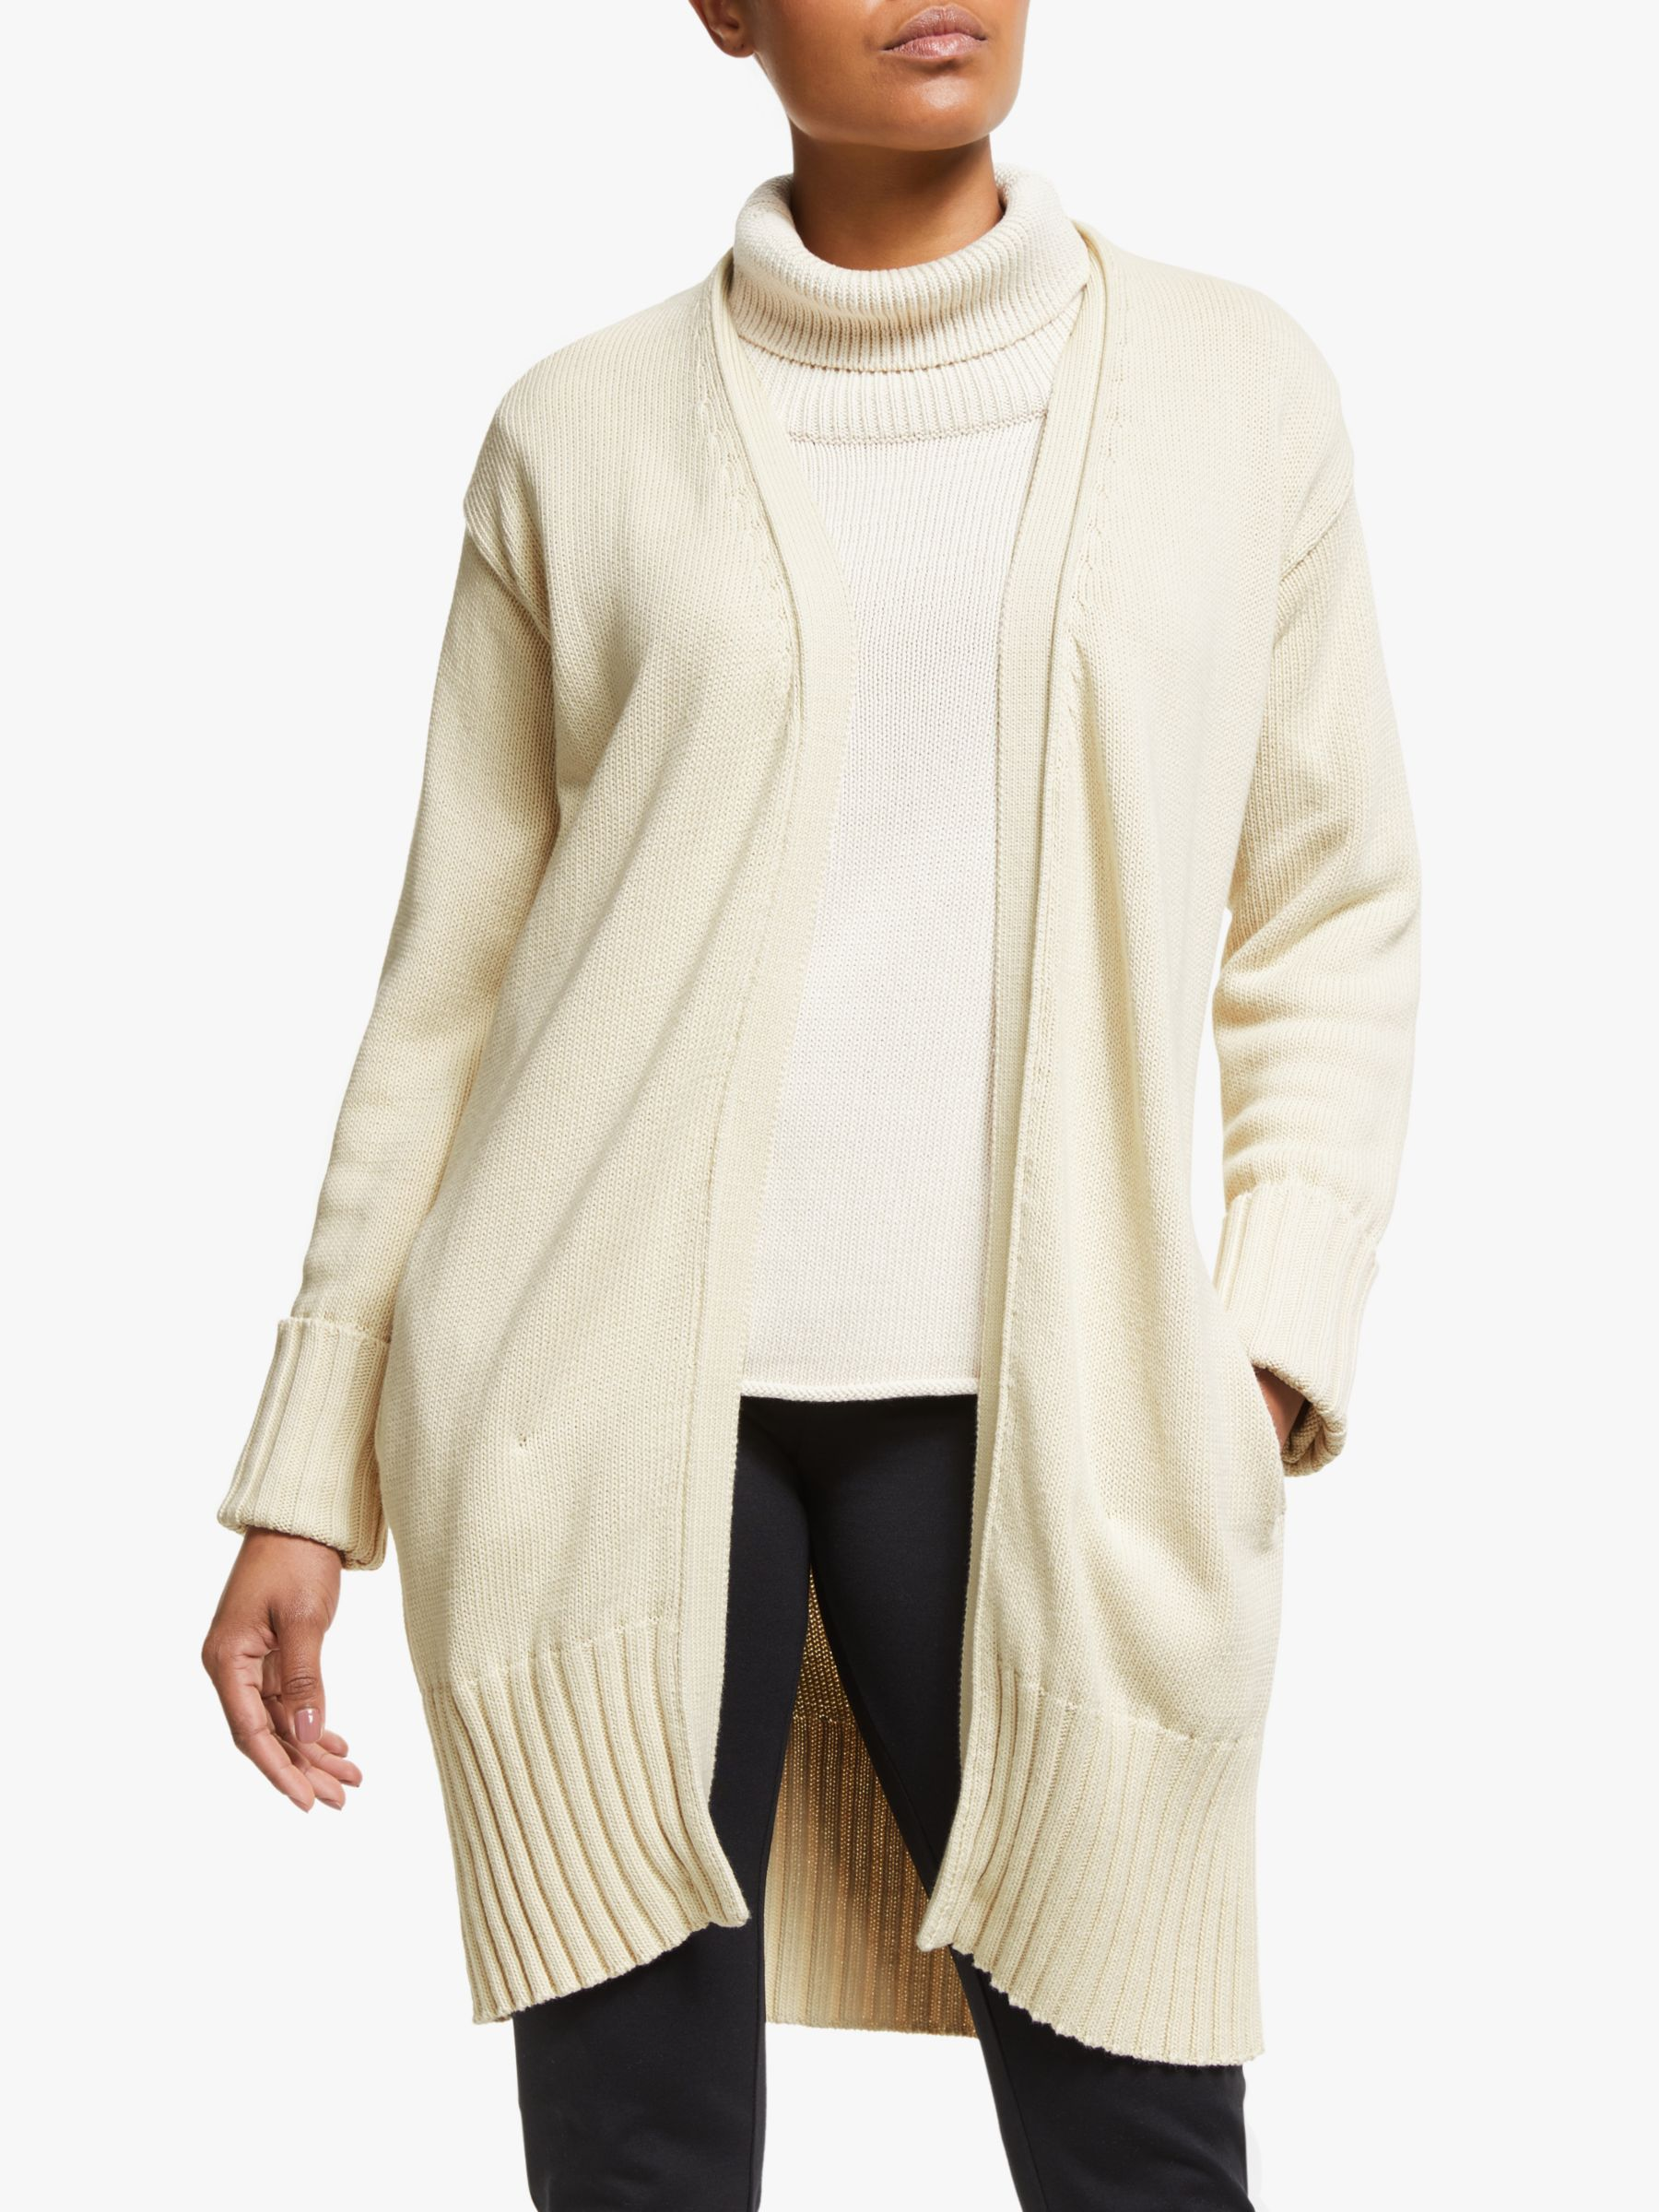 Winser London Winser London Cotton Ribbed Cardigan